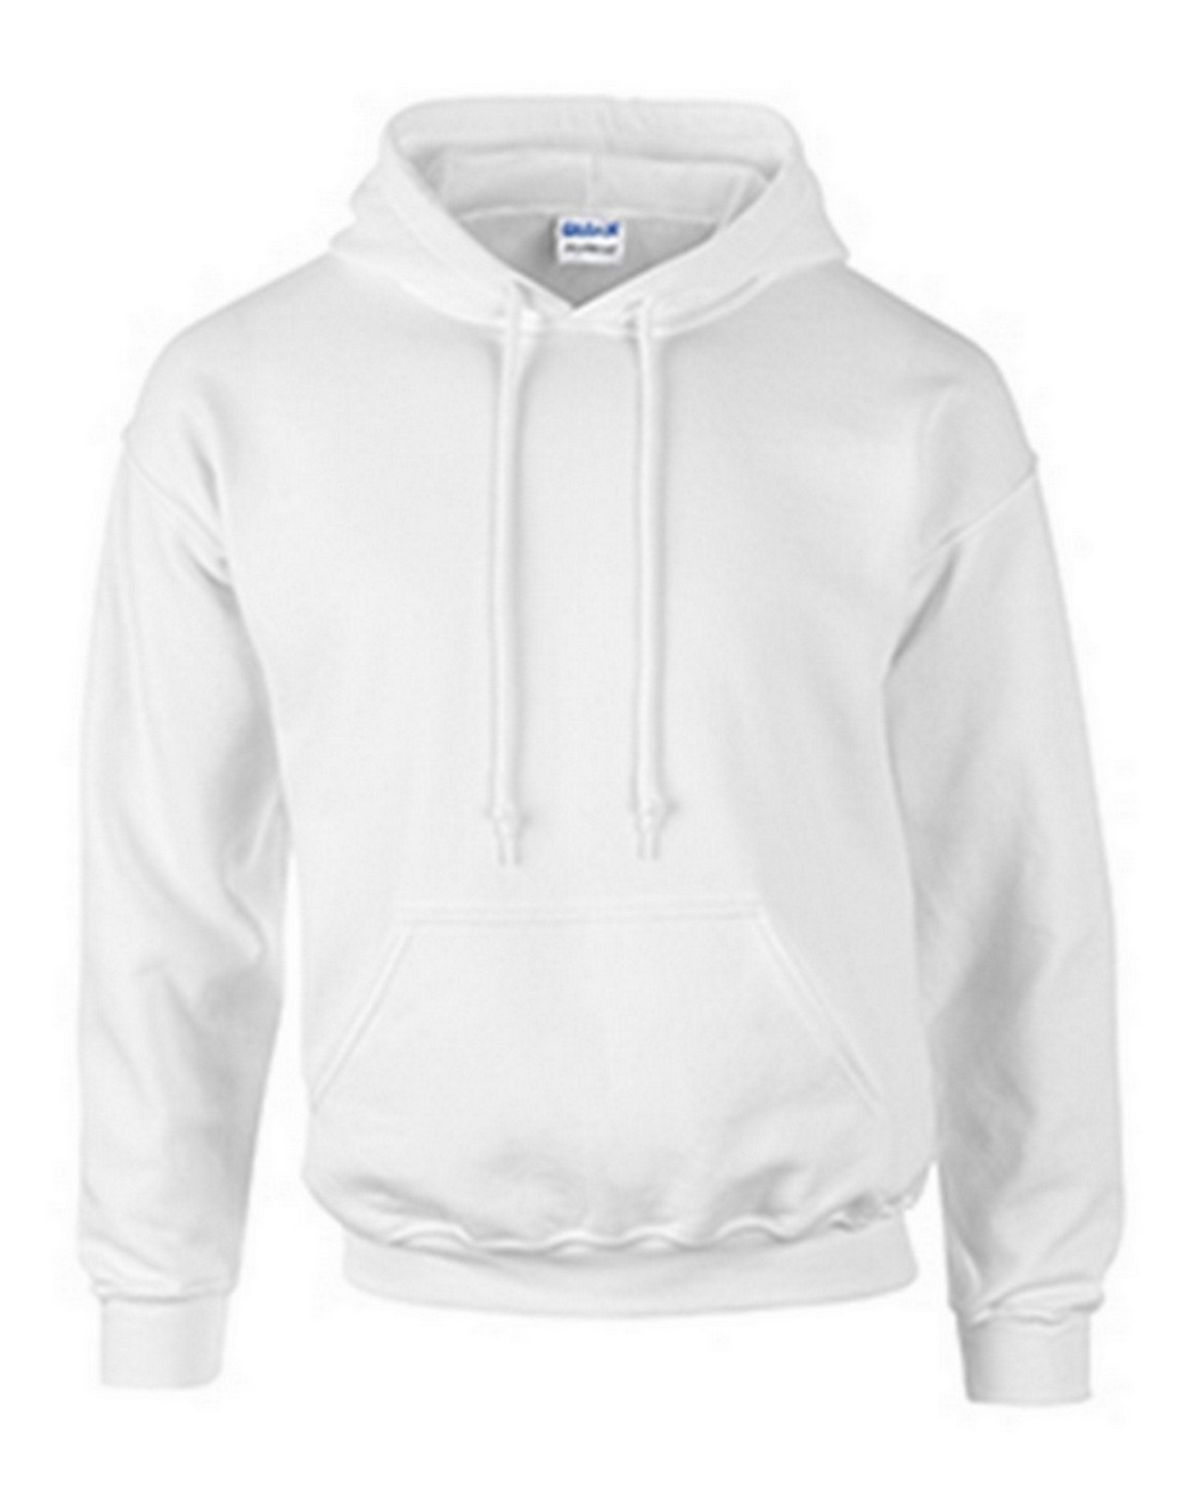 Gildan G12500 Dryblend Adult Hooded Sweatshirt - ApparelnBags.com